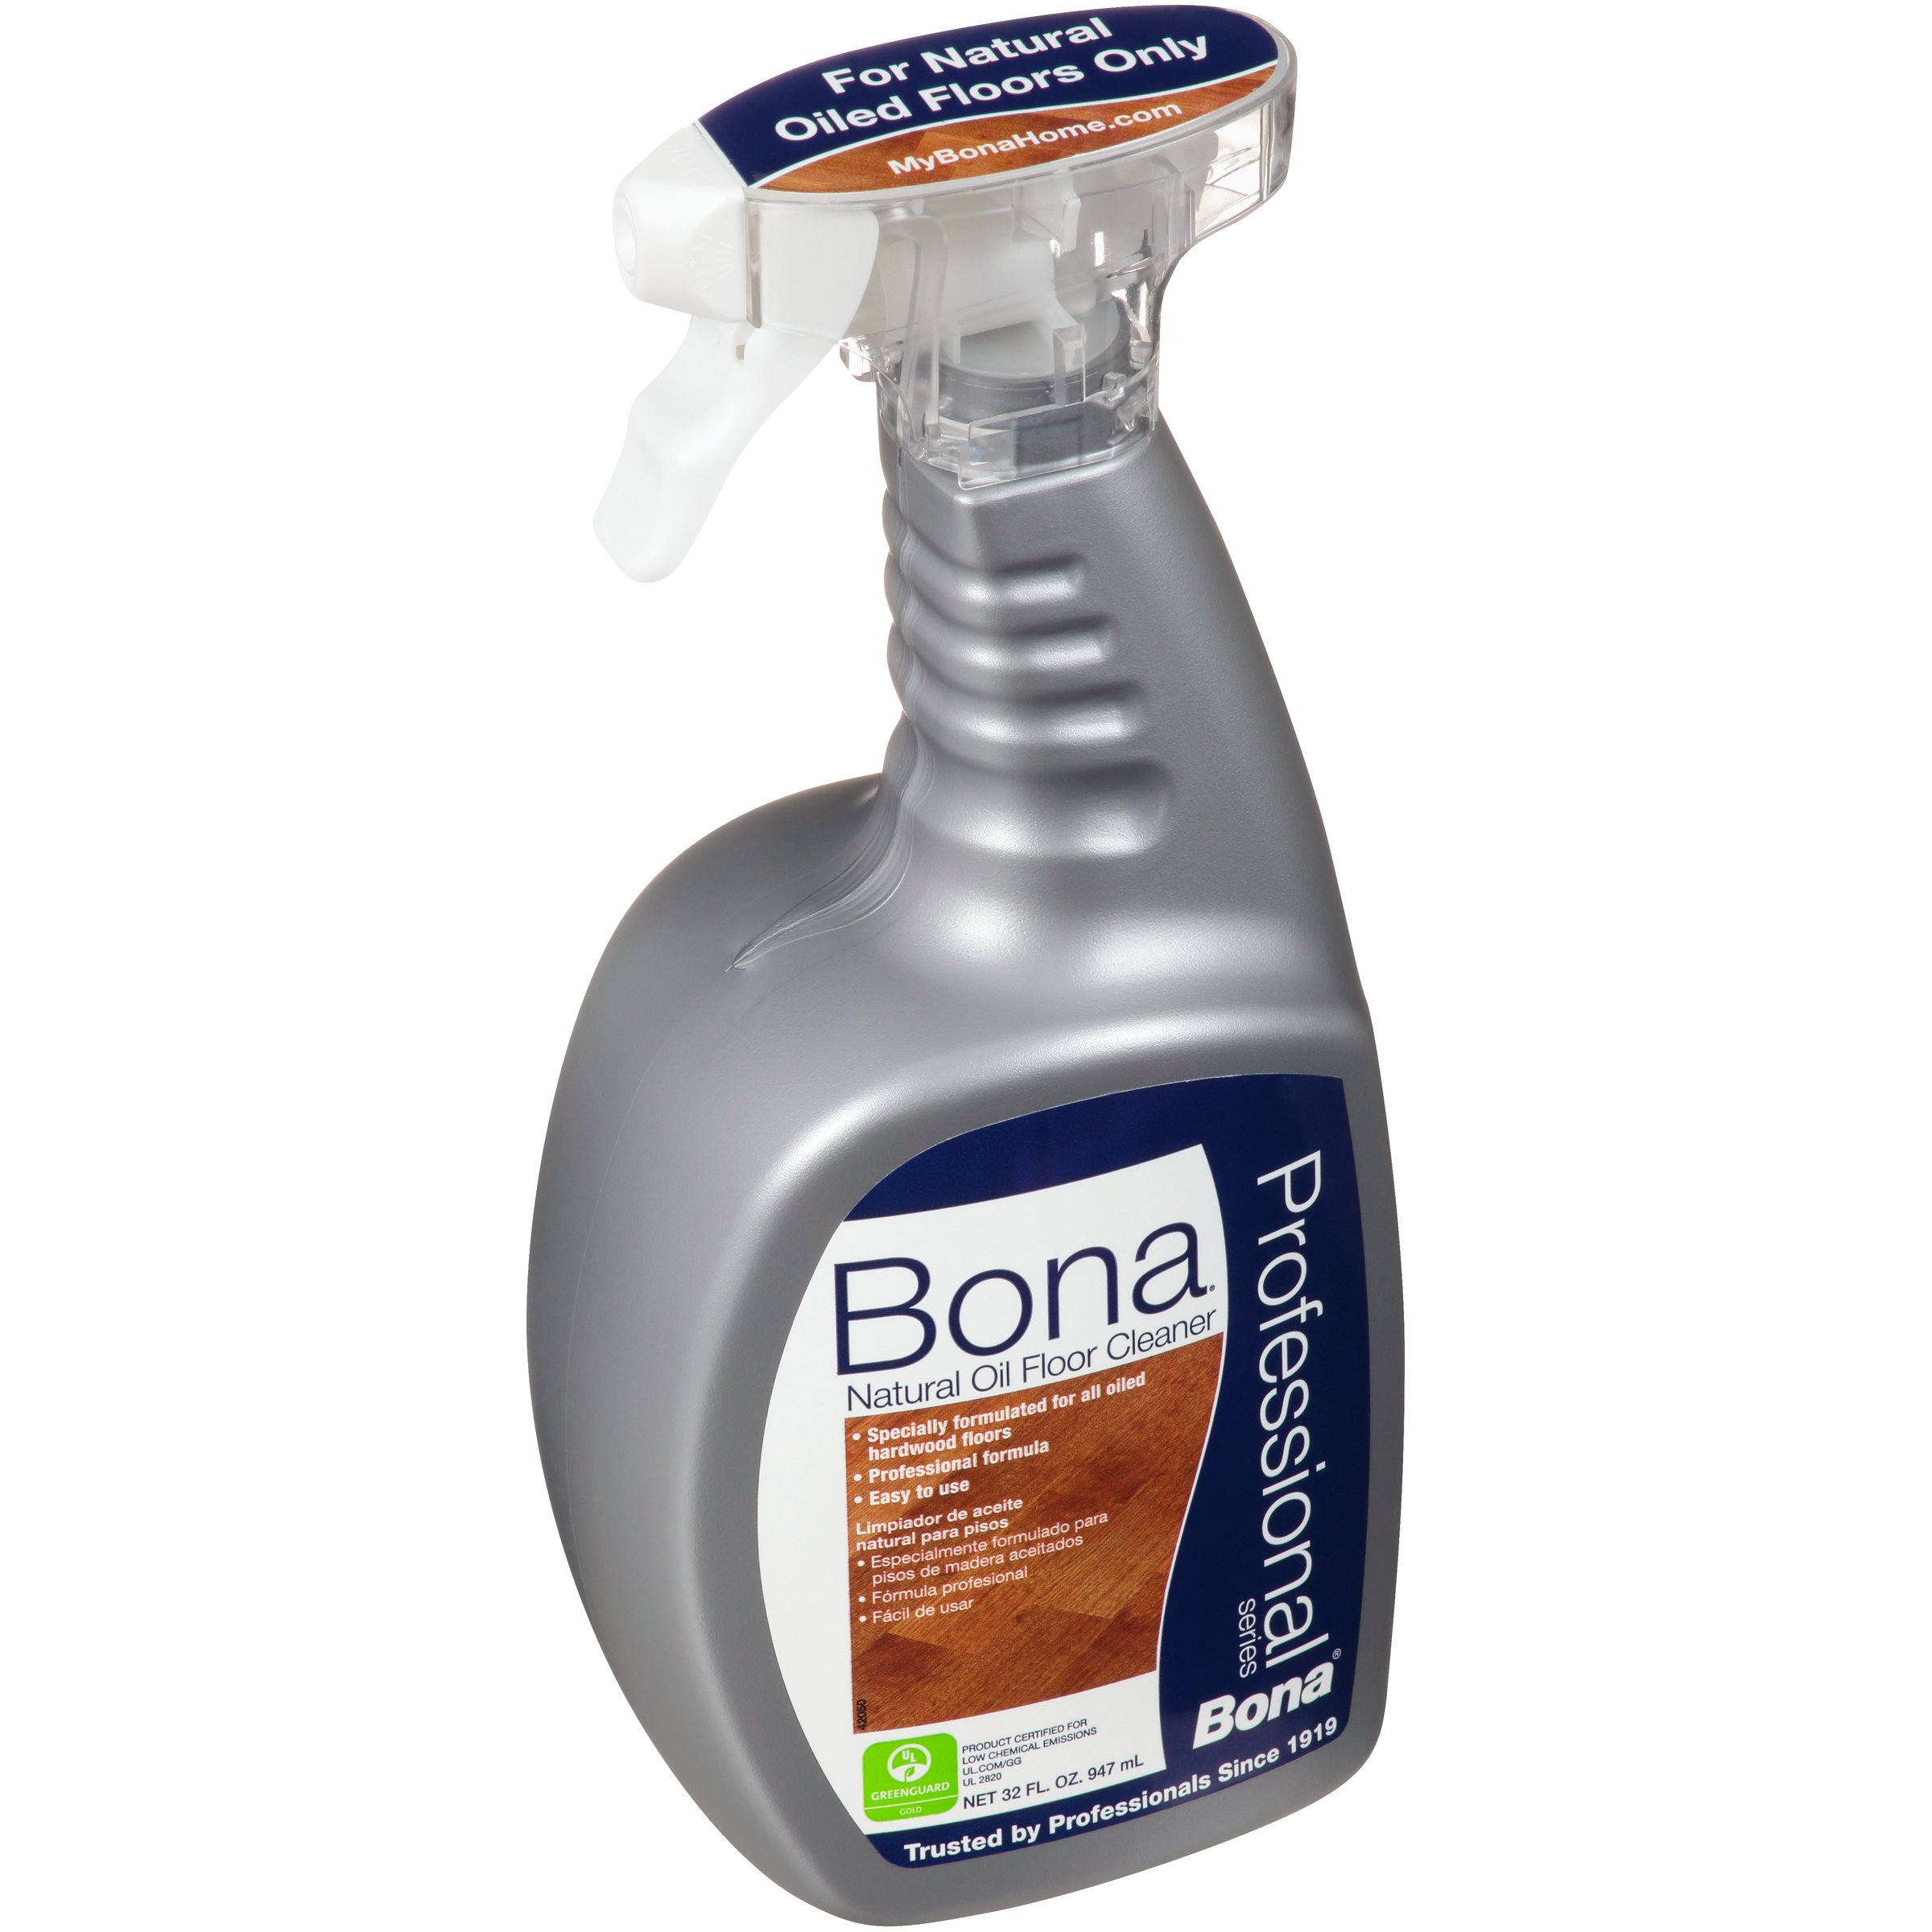 Bona BonaKemi USA WM701151001 Hardwood Floor Cleaner Natural Oil Floor Cleaner Pro 32oz by Bona (Image #2)